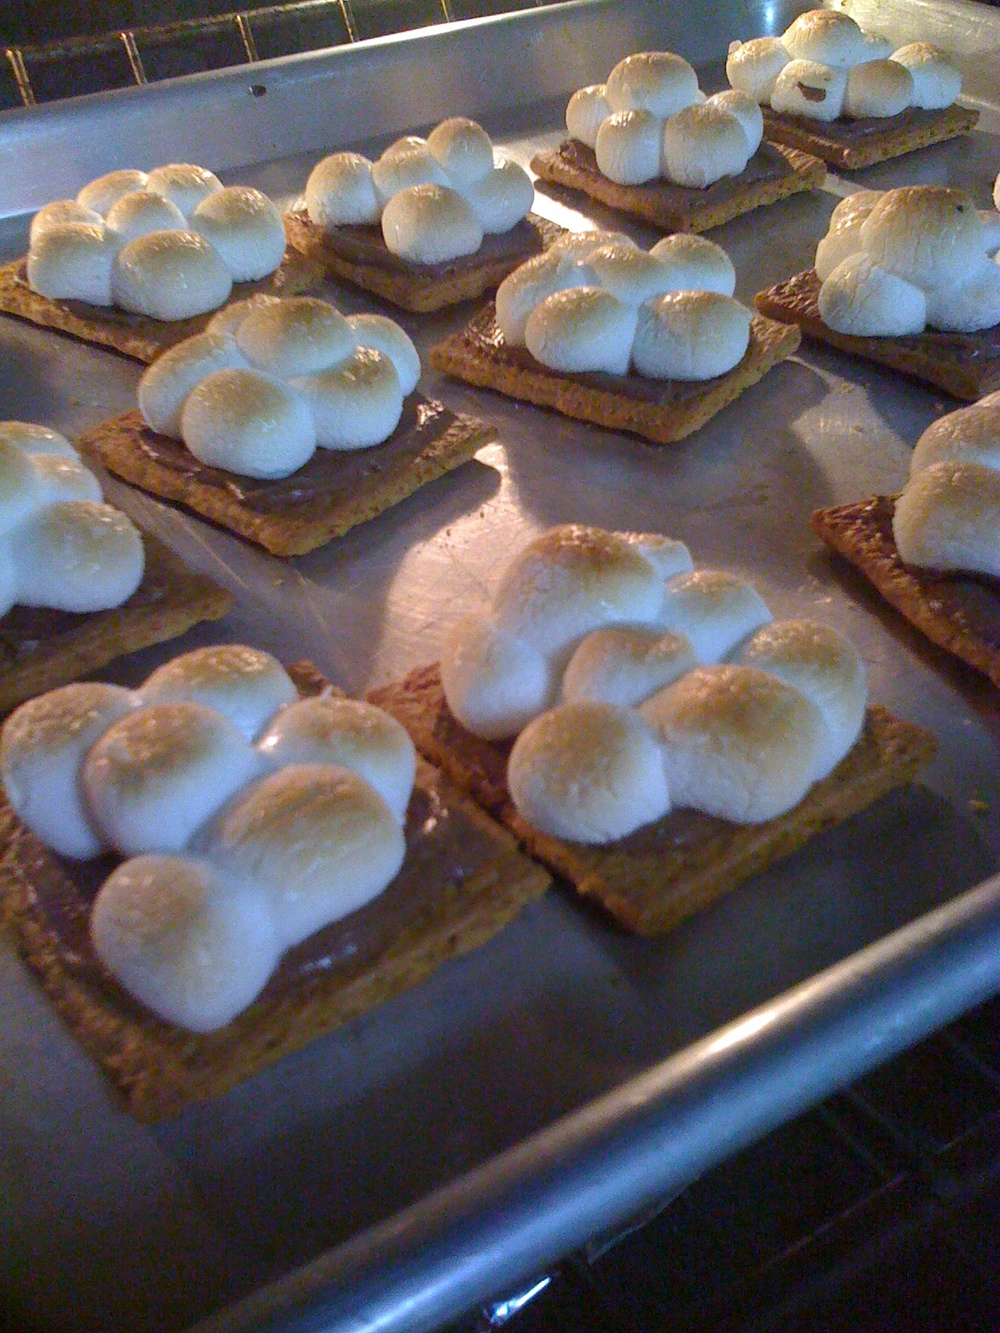 MORES DAY: MAKE INDOOR S'MORES, S'MORES POPS, S'MORES BAR AND MOR...